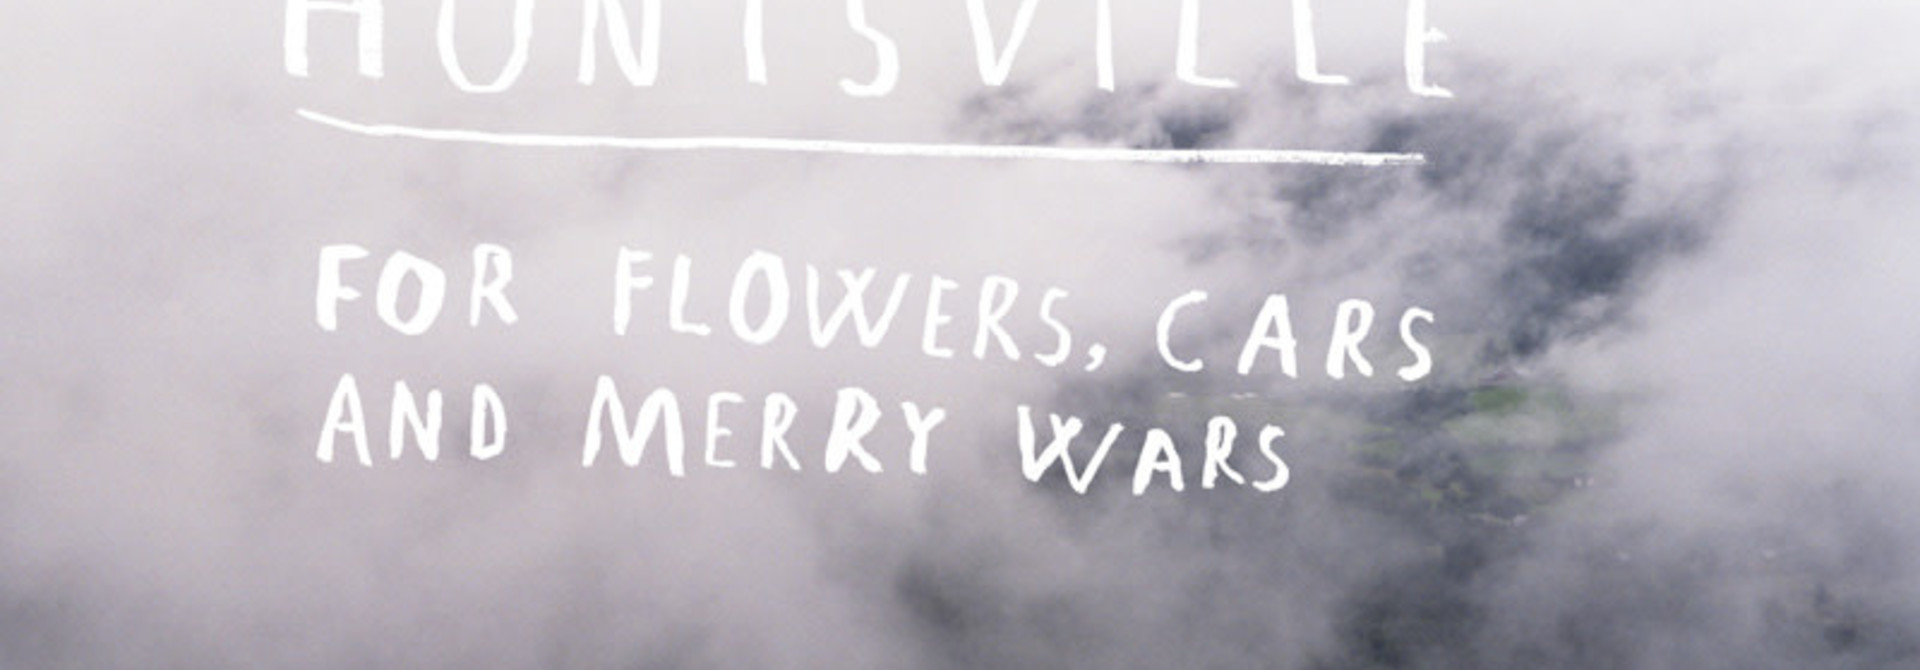 Huntsville • For Flowers, Cars And Merry Wars